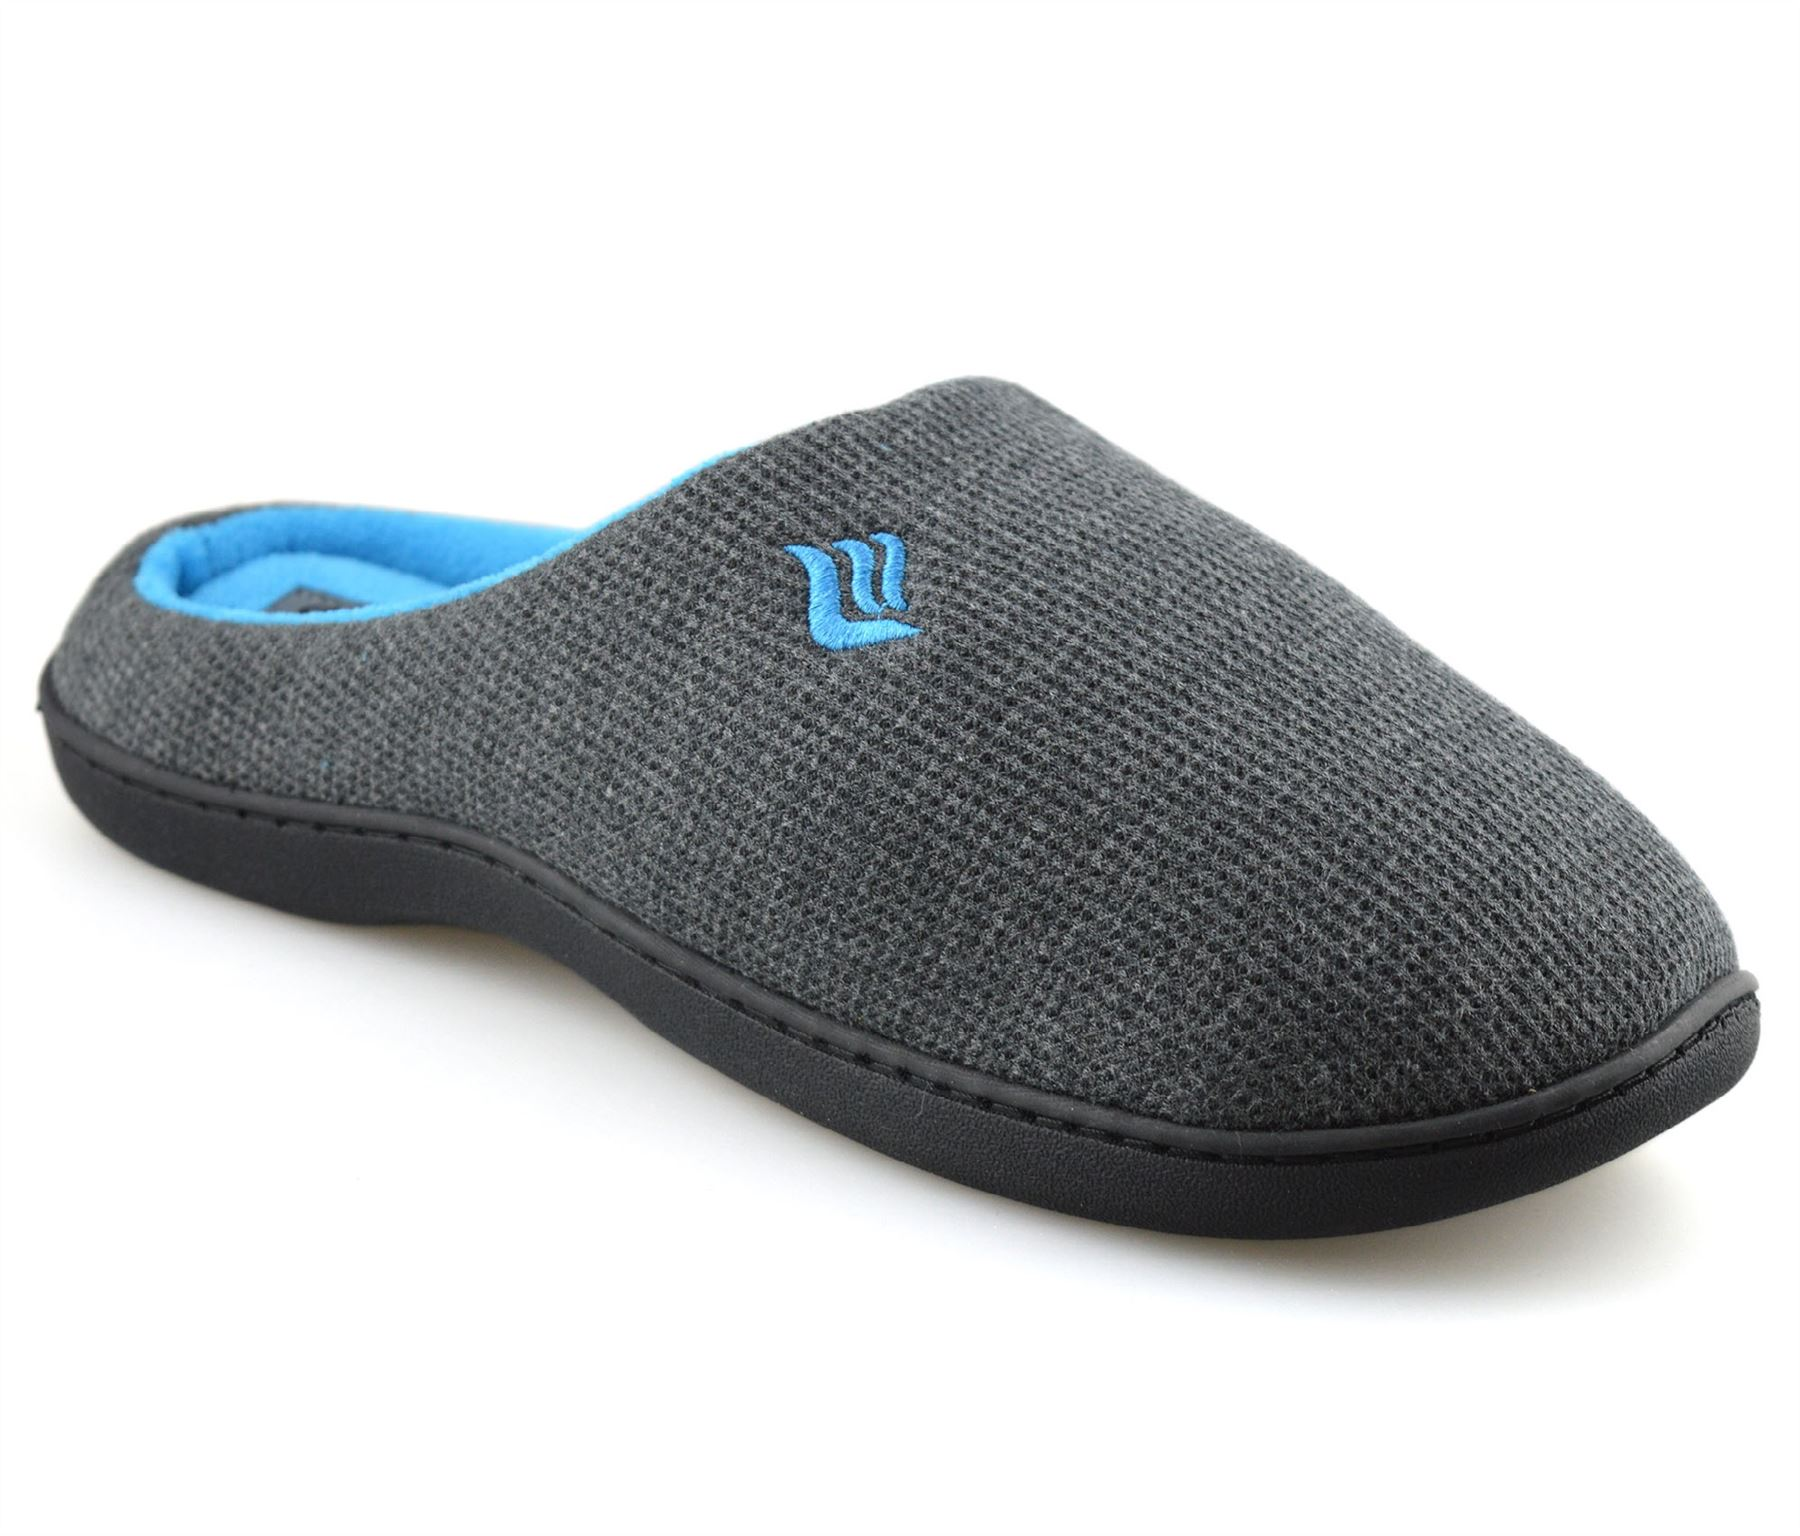 Mens-Memory-Foam-Warm-Fleece-Lined-Cotton-Slippers-Slip-On-Clog-Mules-Shoes-Size thumbnail 20